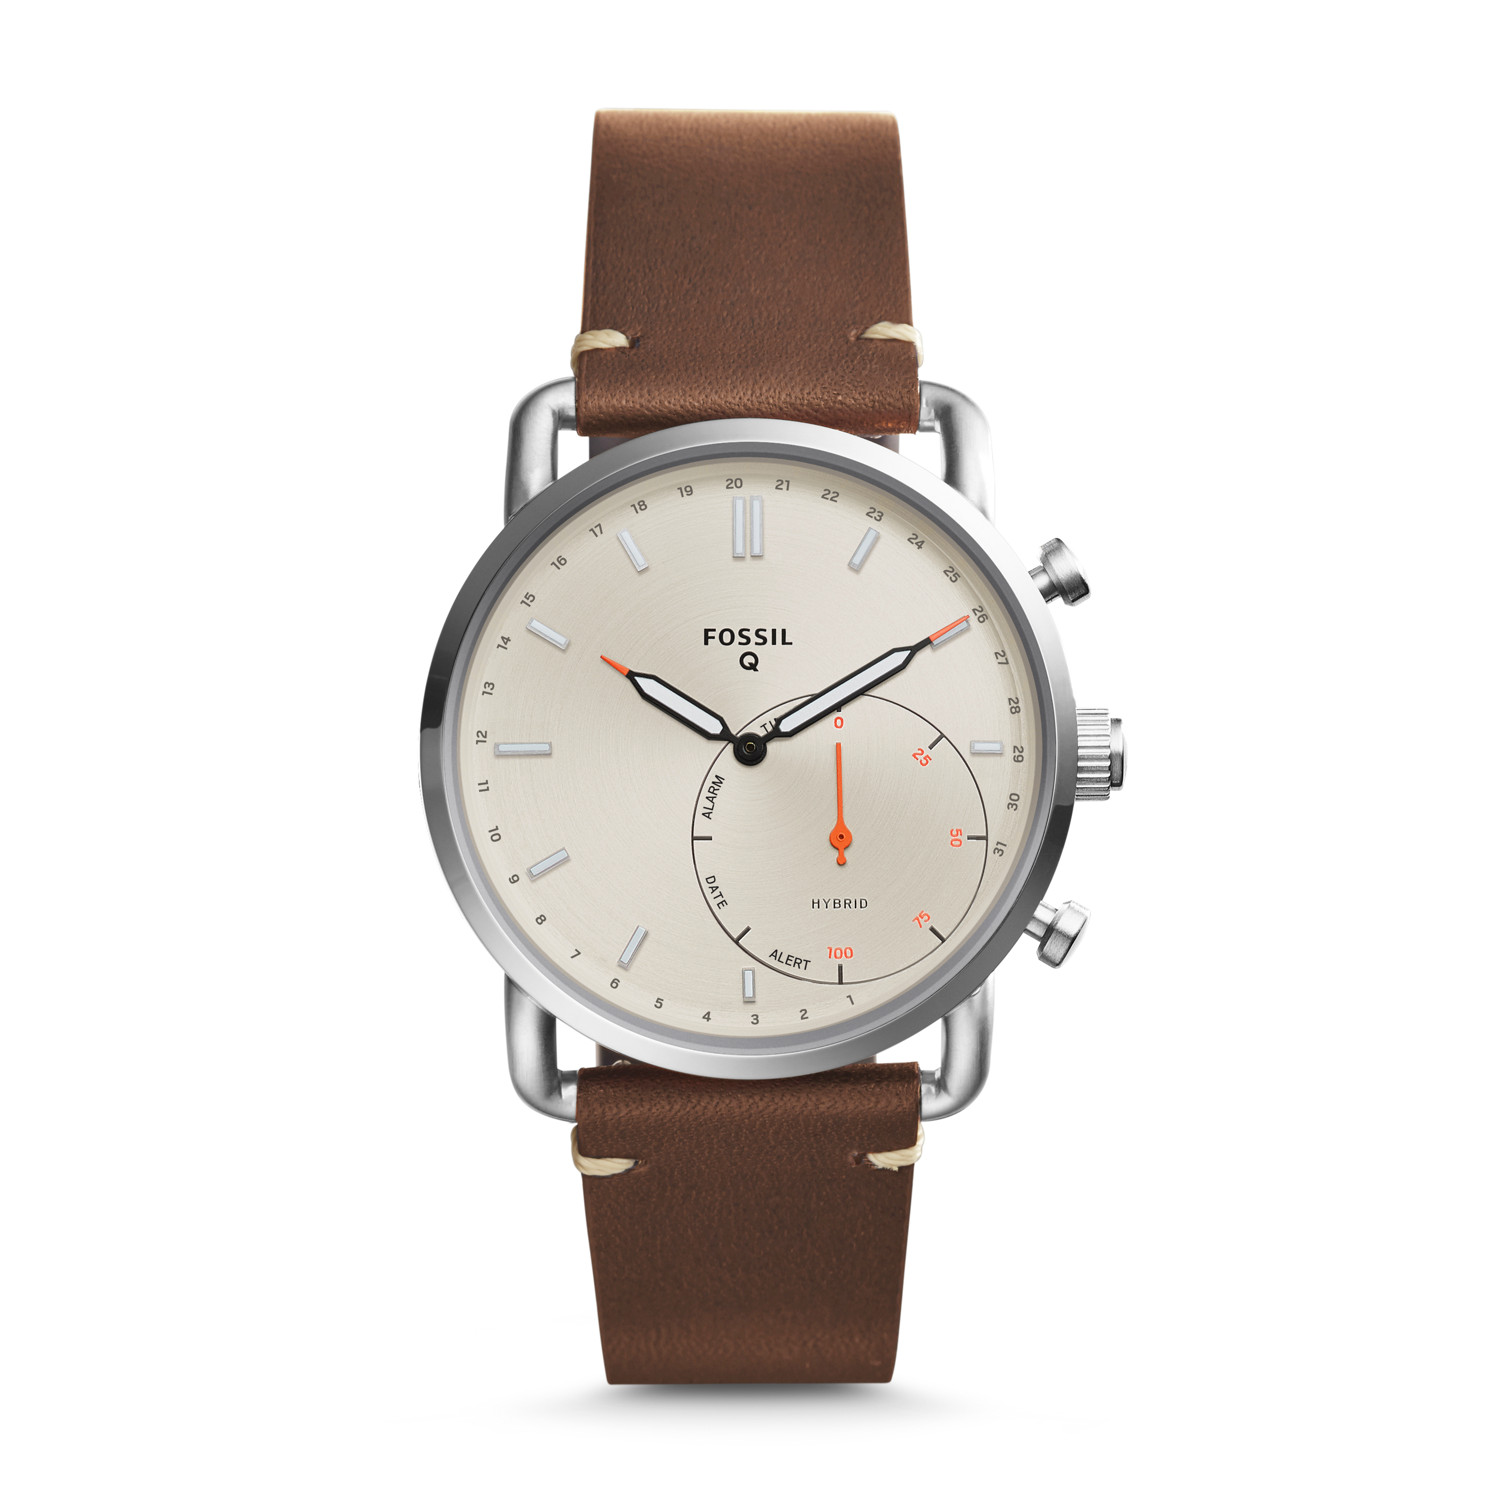 Image result for Fossil Q Commuter watch